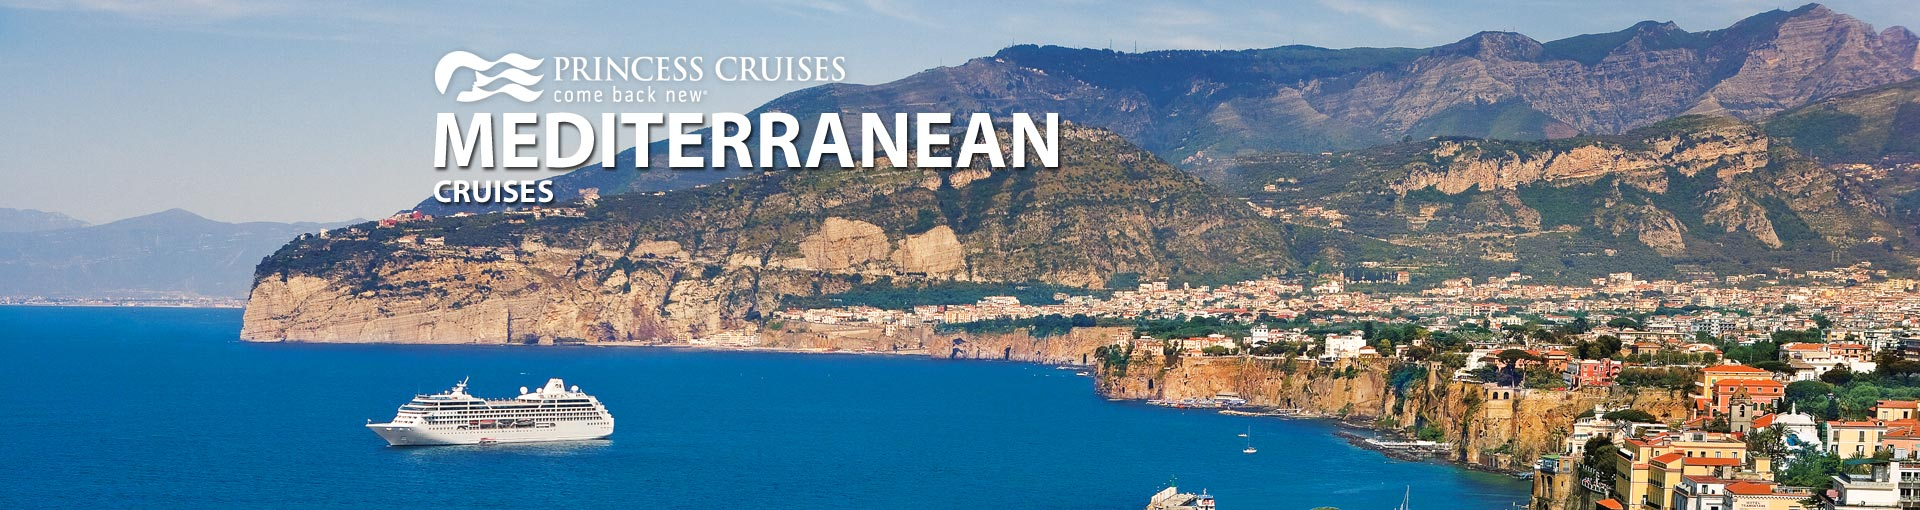 Princess Mediterranean Cruises 2018 And 2019